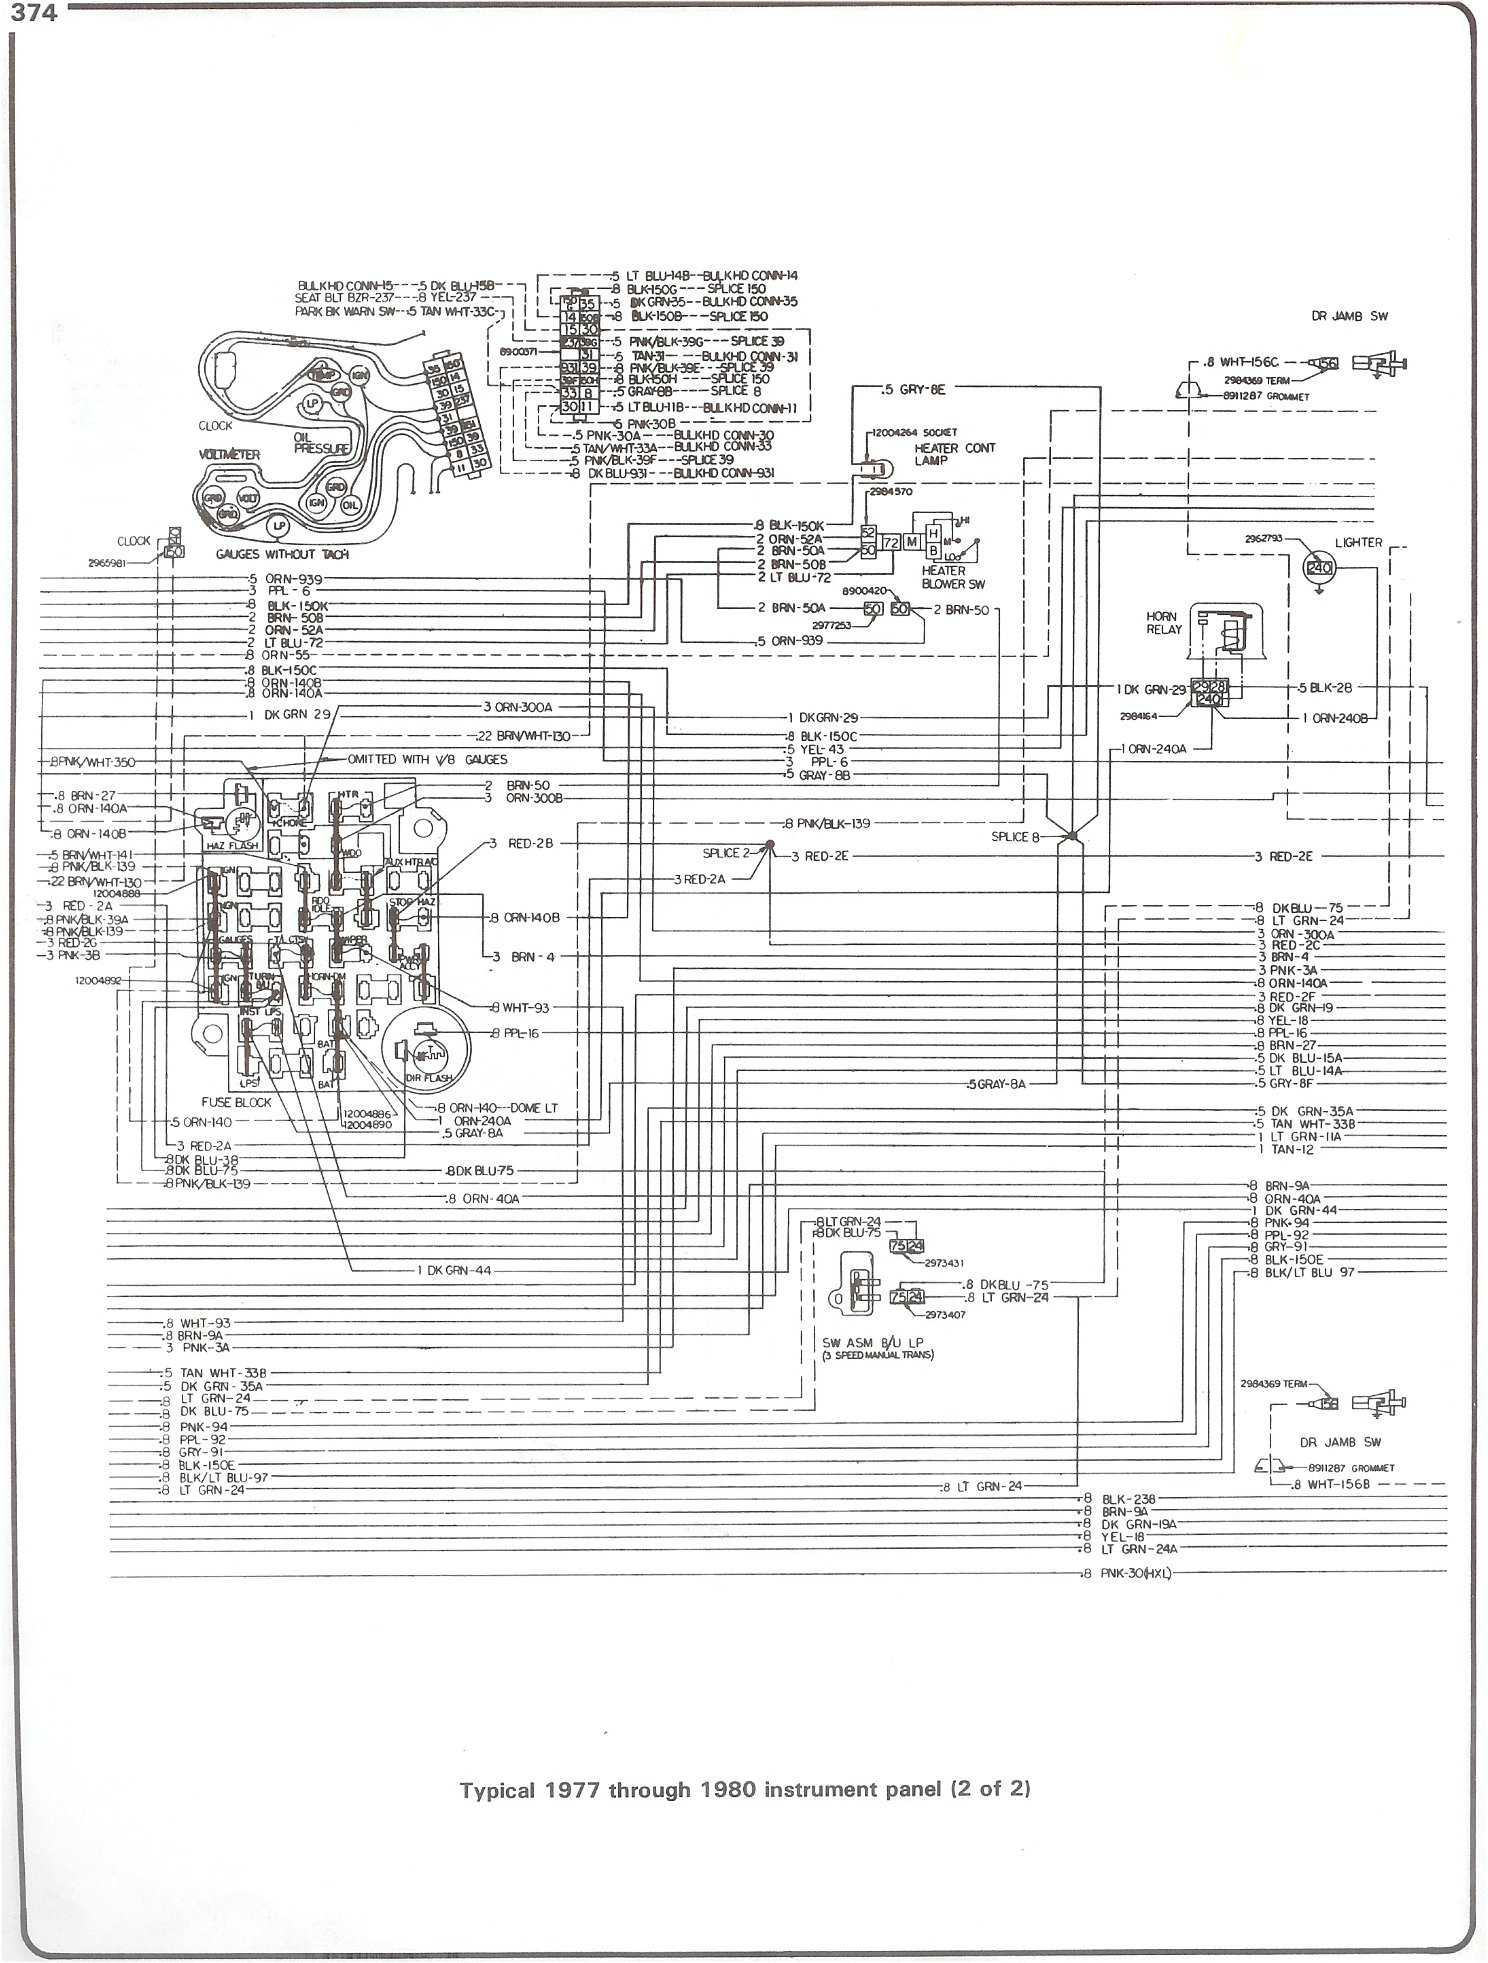 77 80_instrument_pg2 complete 73 87 wiring diagrams wiring diagram for 1984 chevy c10 at bakdesigns.co